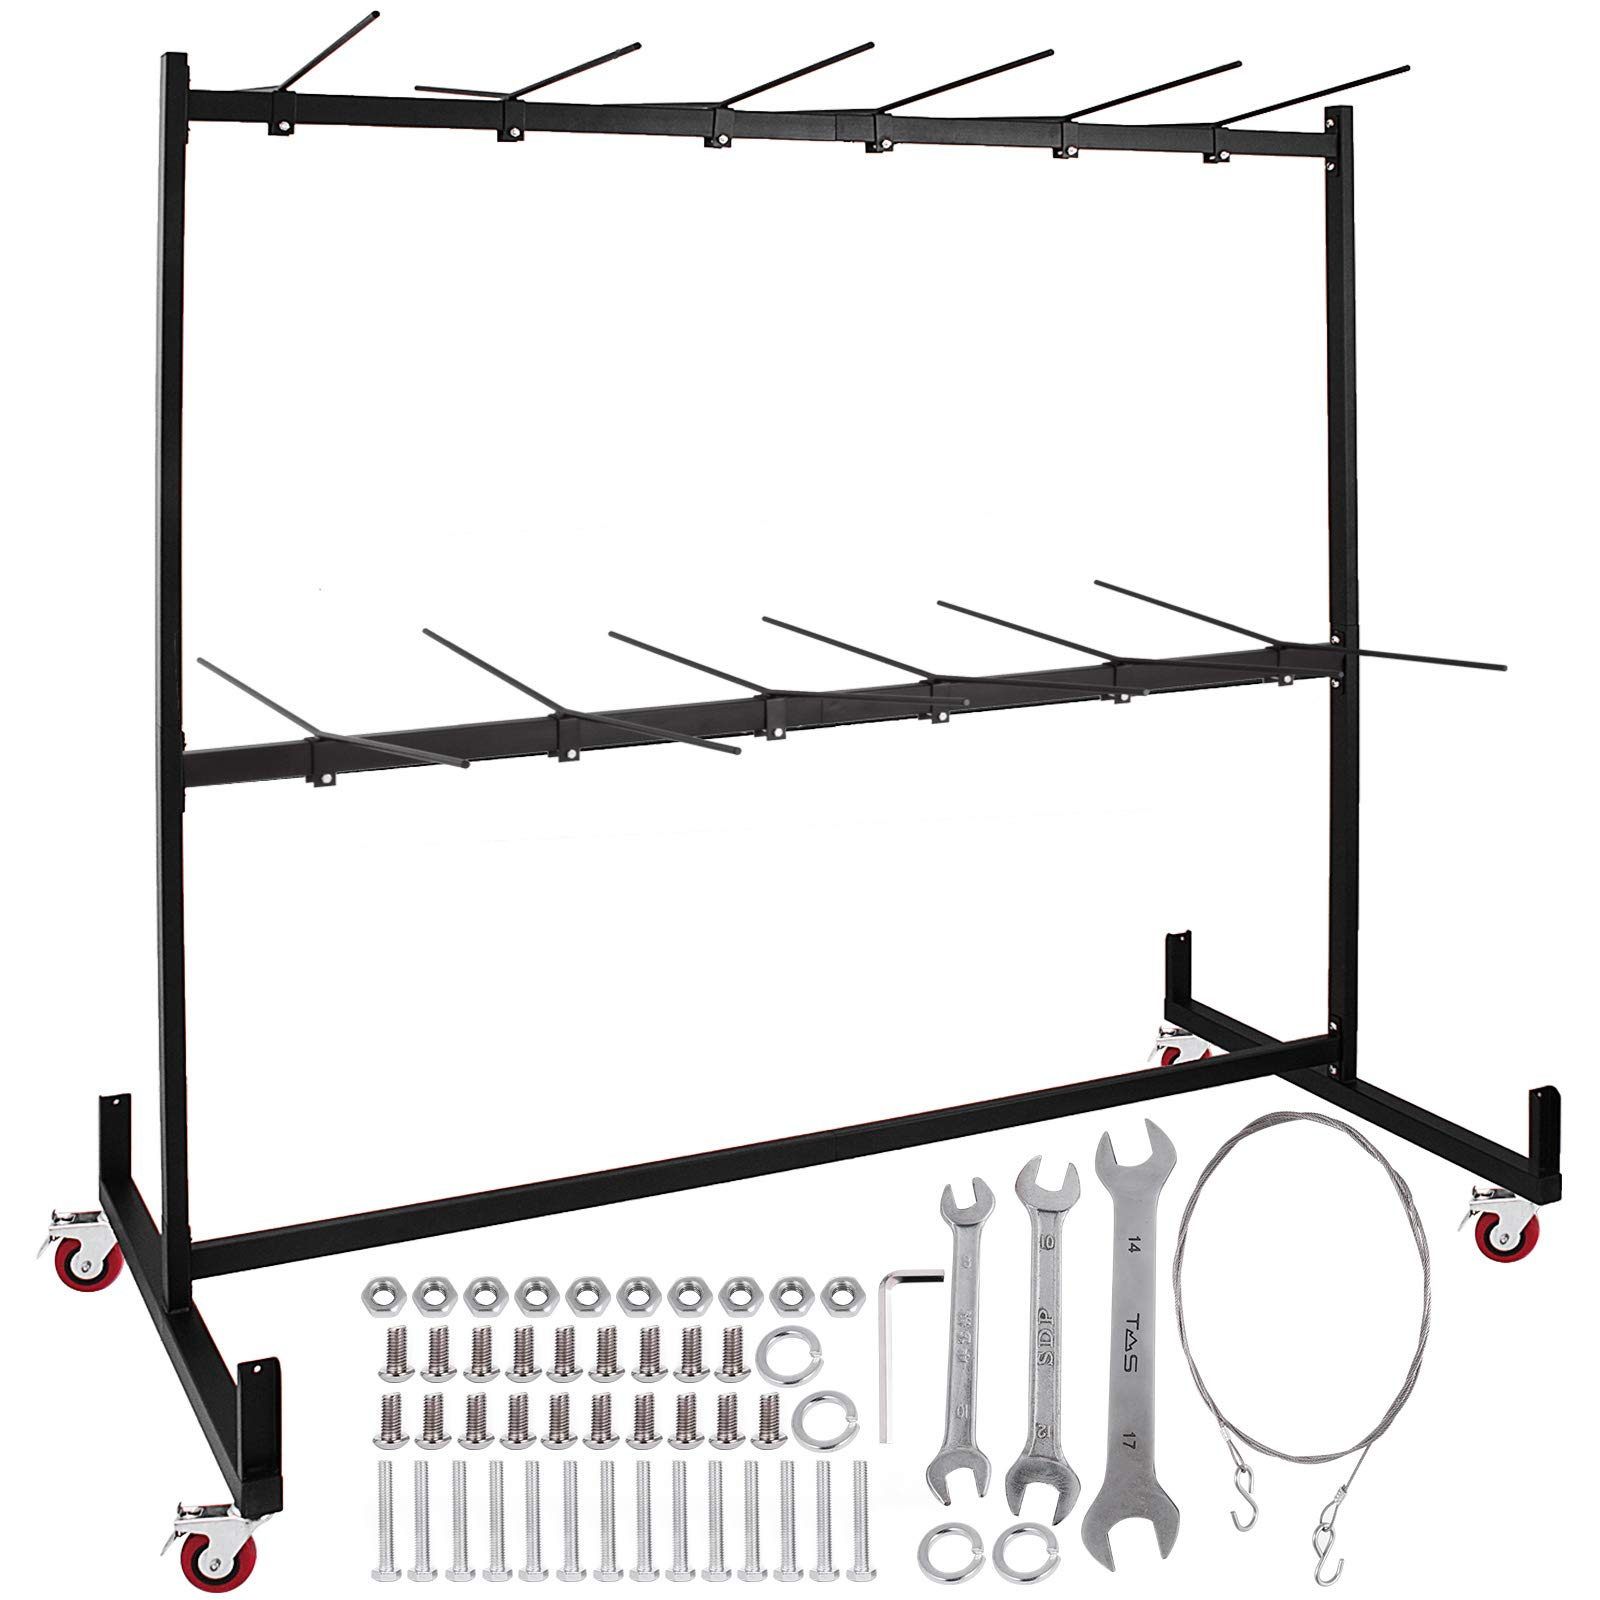 Happybuy Two-Tier Folding Chair Rack Dolly Cart with Locking Wheels Transport Max 60 Chairs 12 Tables Heavy Duty Hanging Foldable Seat and Table Combo Trolly Rack Steel Folding Chair Cart by Happybuy